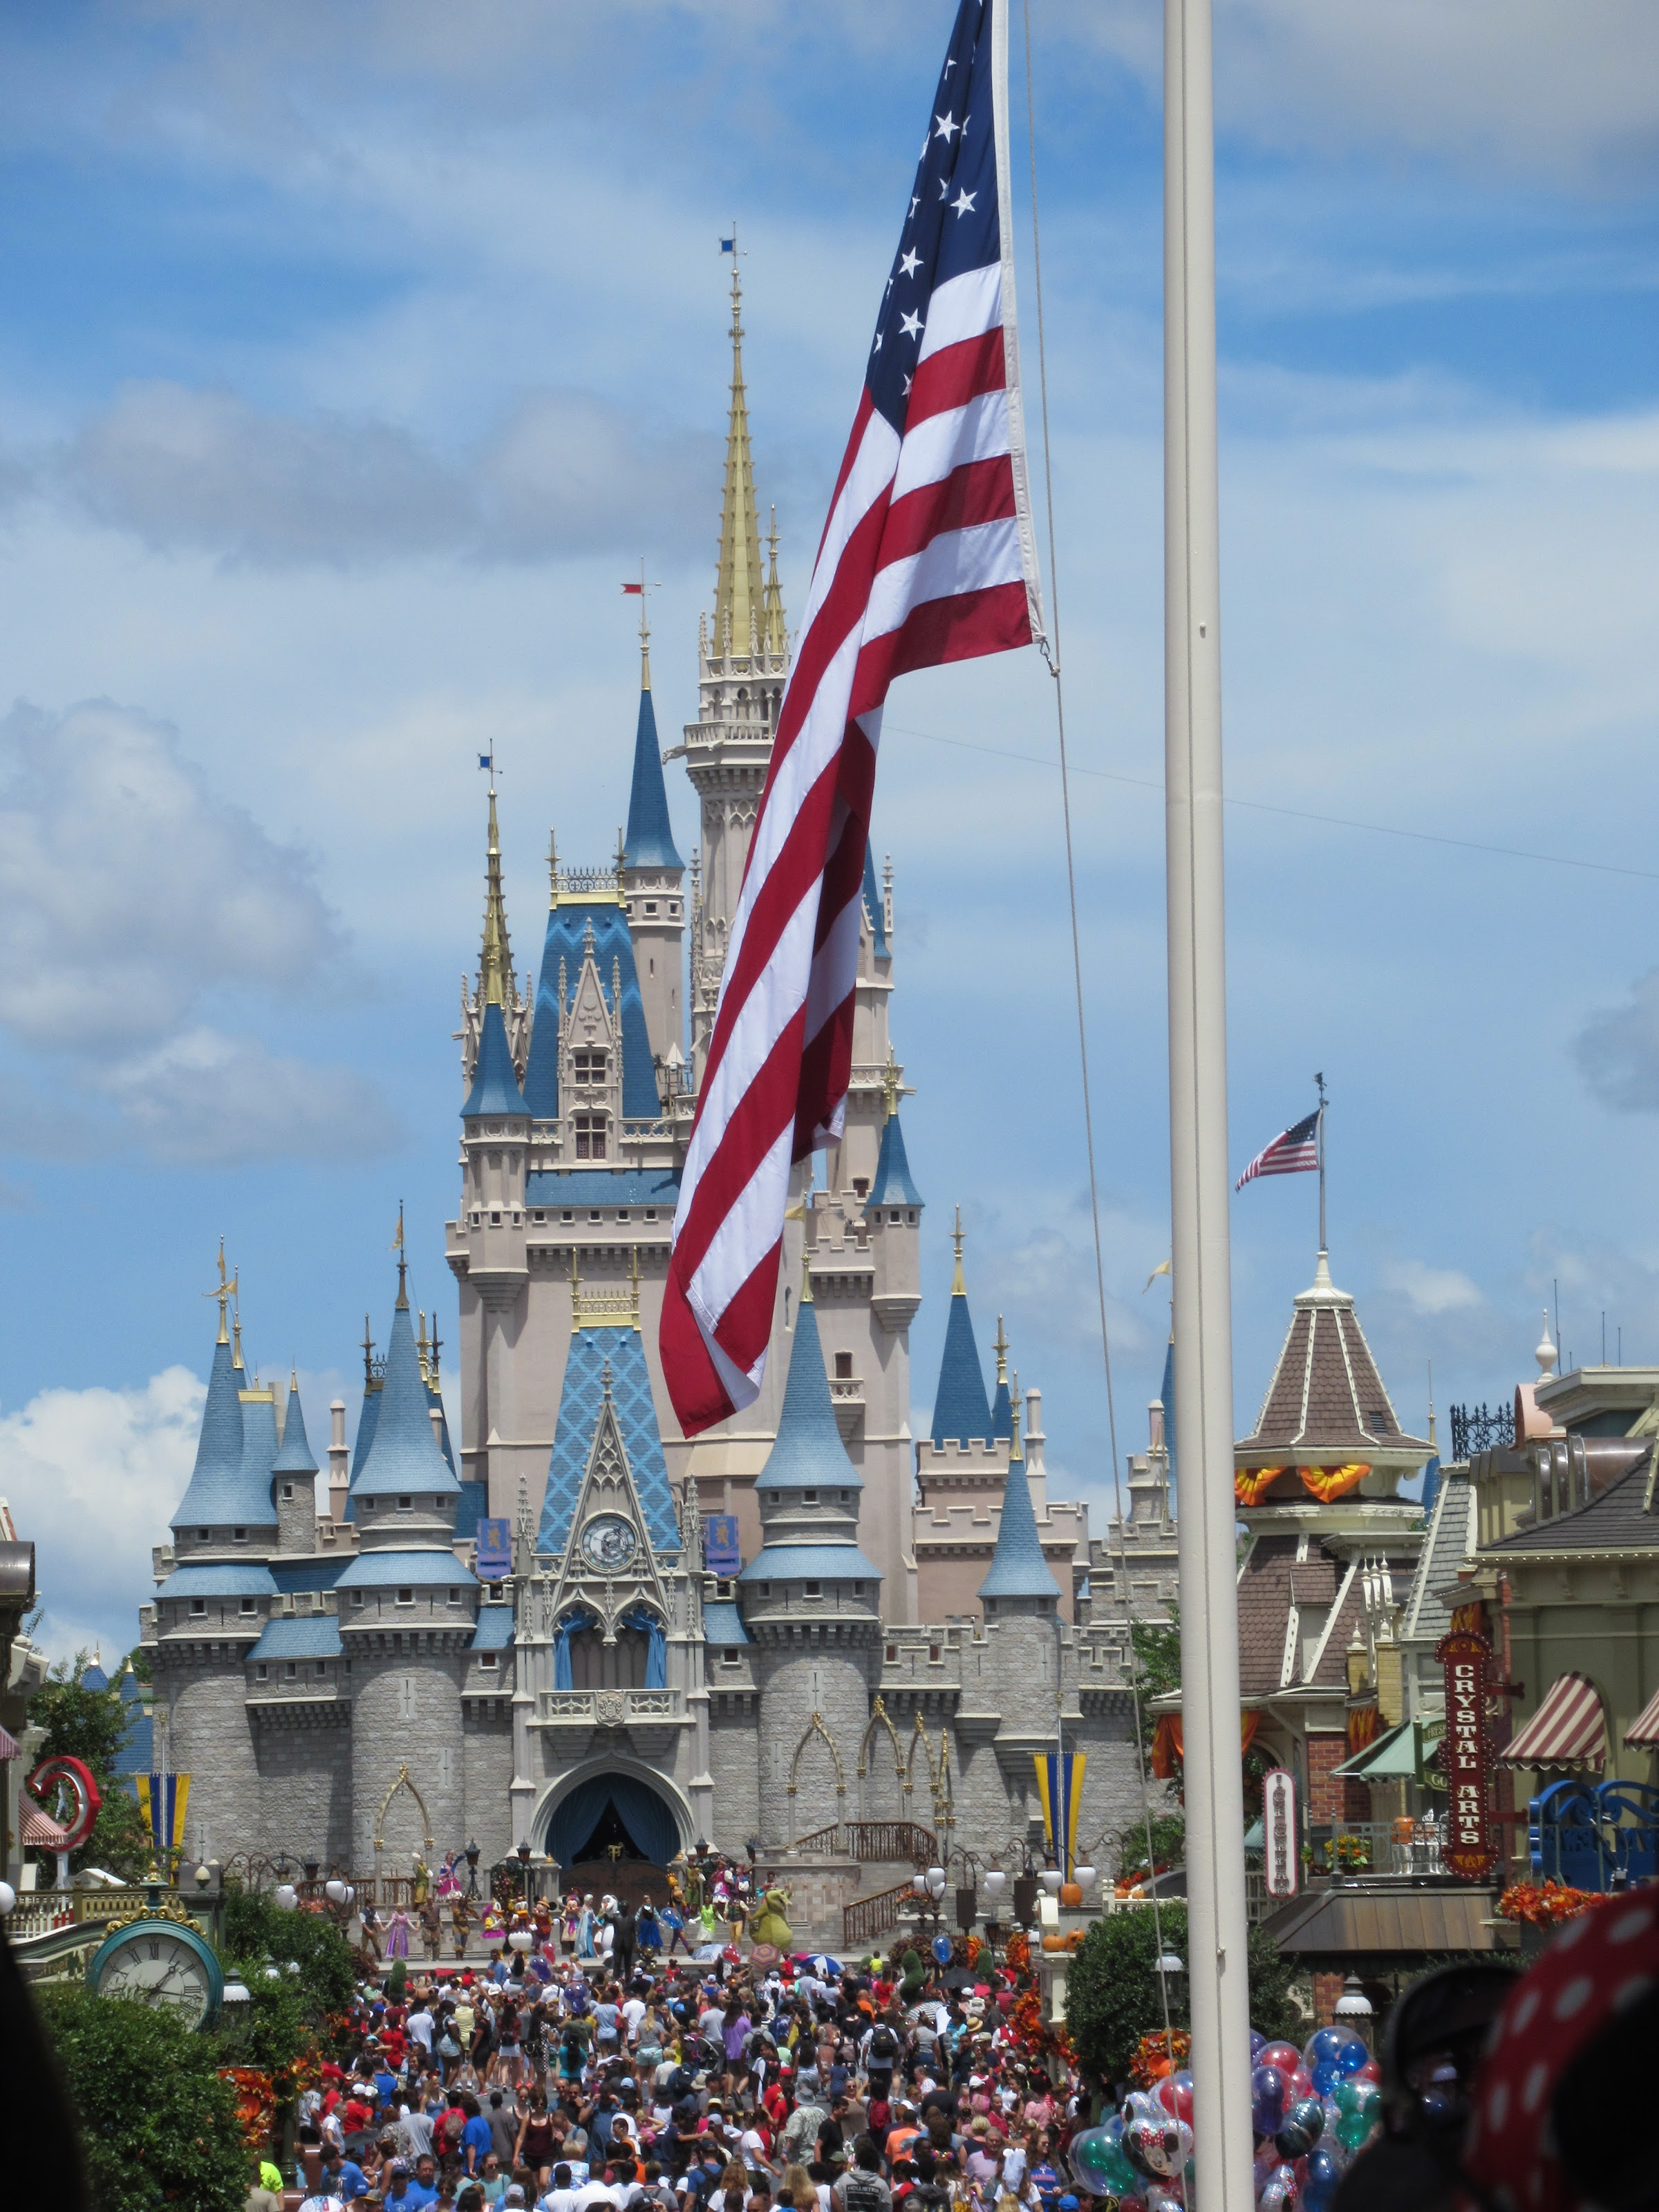 Fourth of July at Disney is arguably one of the busiest days of the year. That being said, there are usually some characters out in fun, patriotic attire, special concerts and 'better-than-normal' fireworks displays.